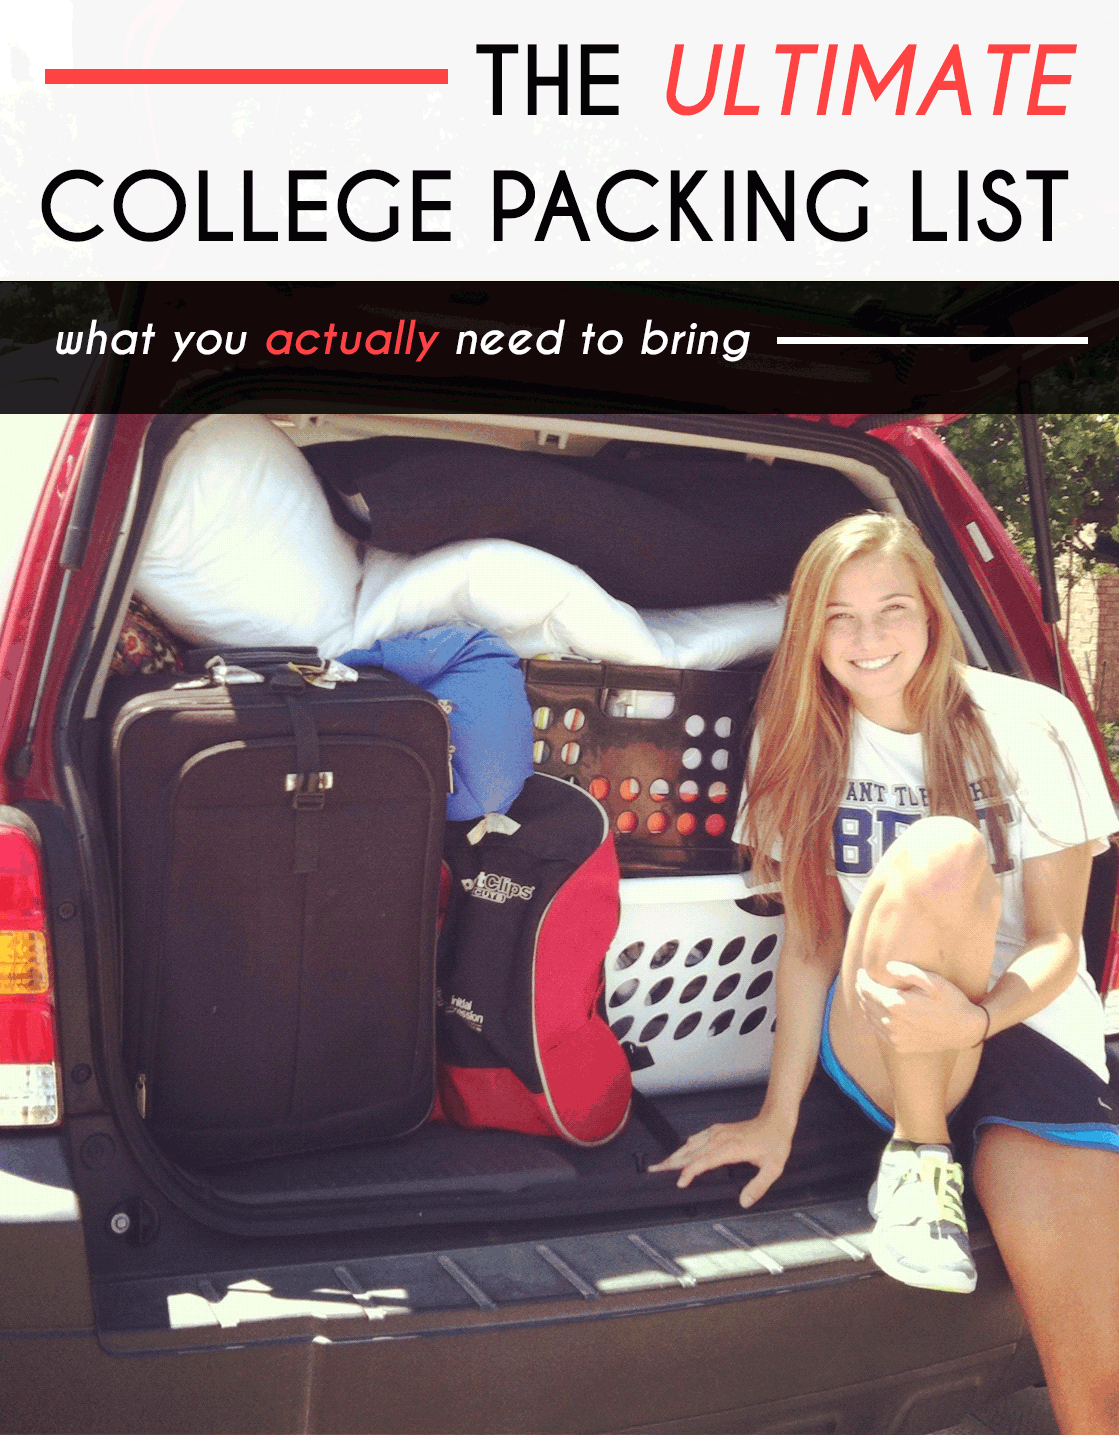 There Are Many College Packing Guides Circulating The Internet To Help You,  But Most Of Them Are Way Too Extensive With Trivial Items!